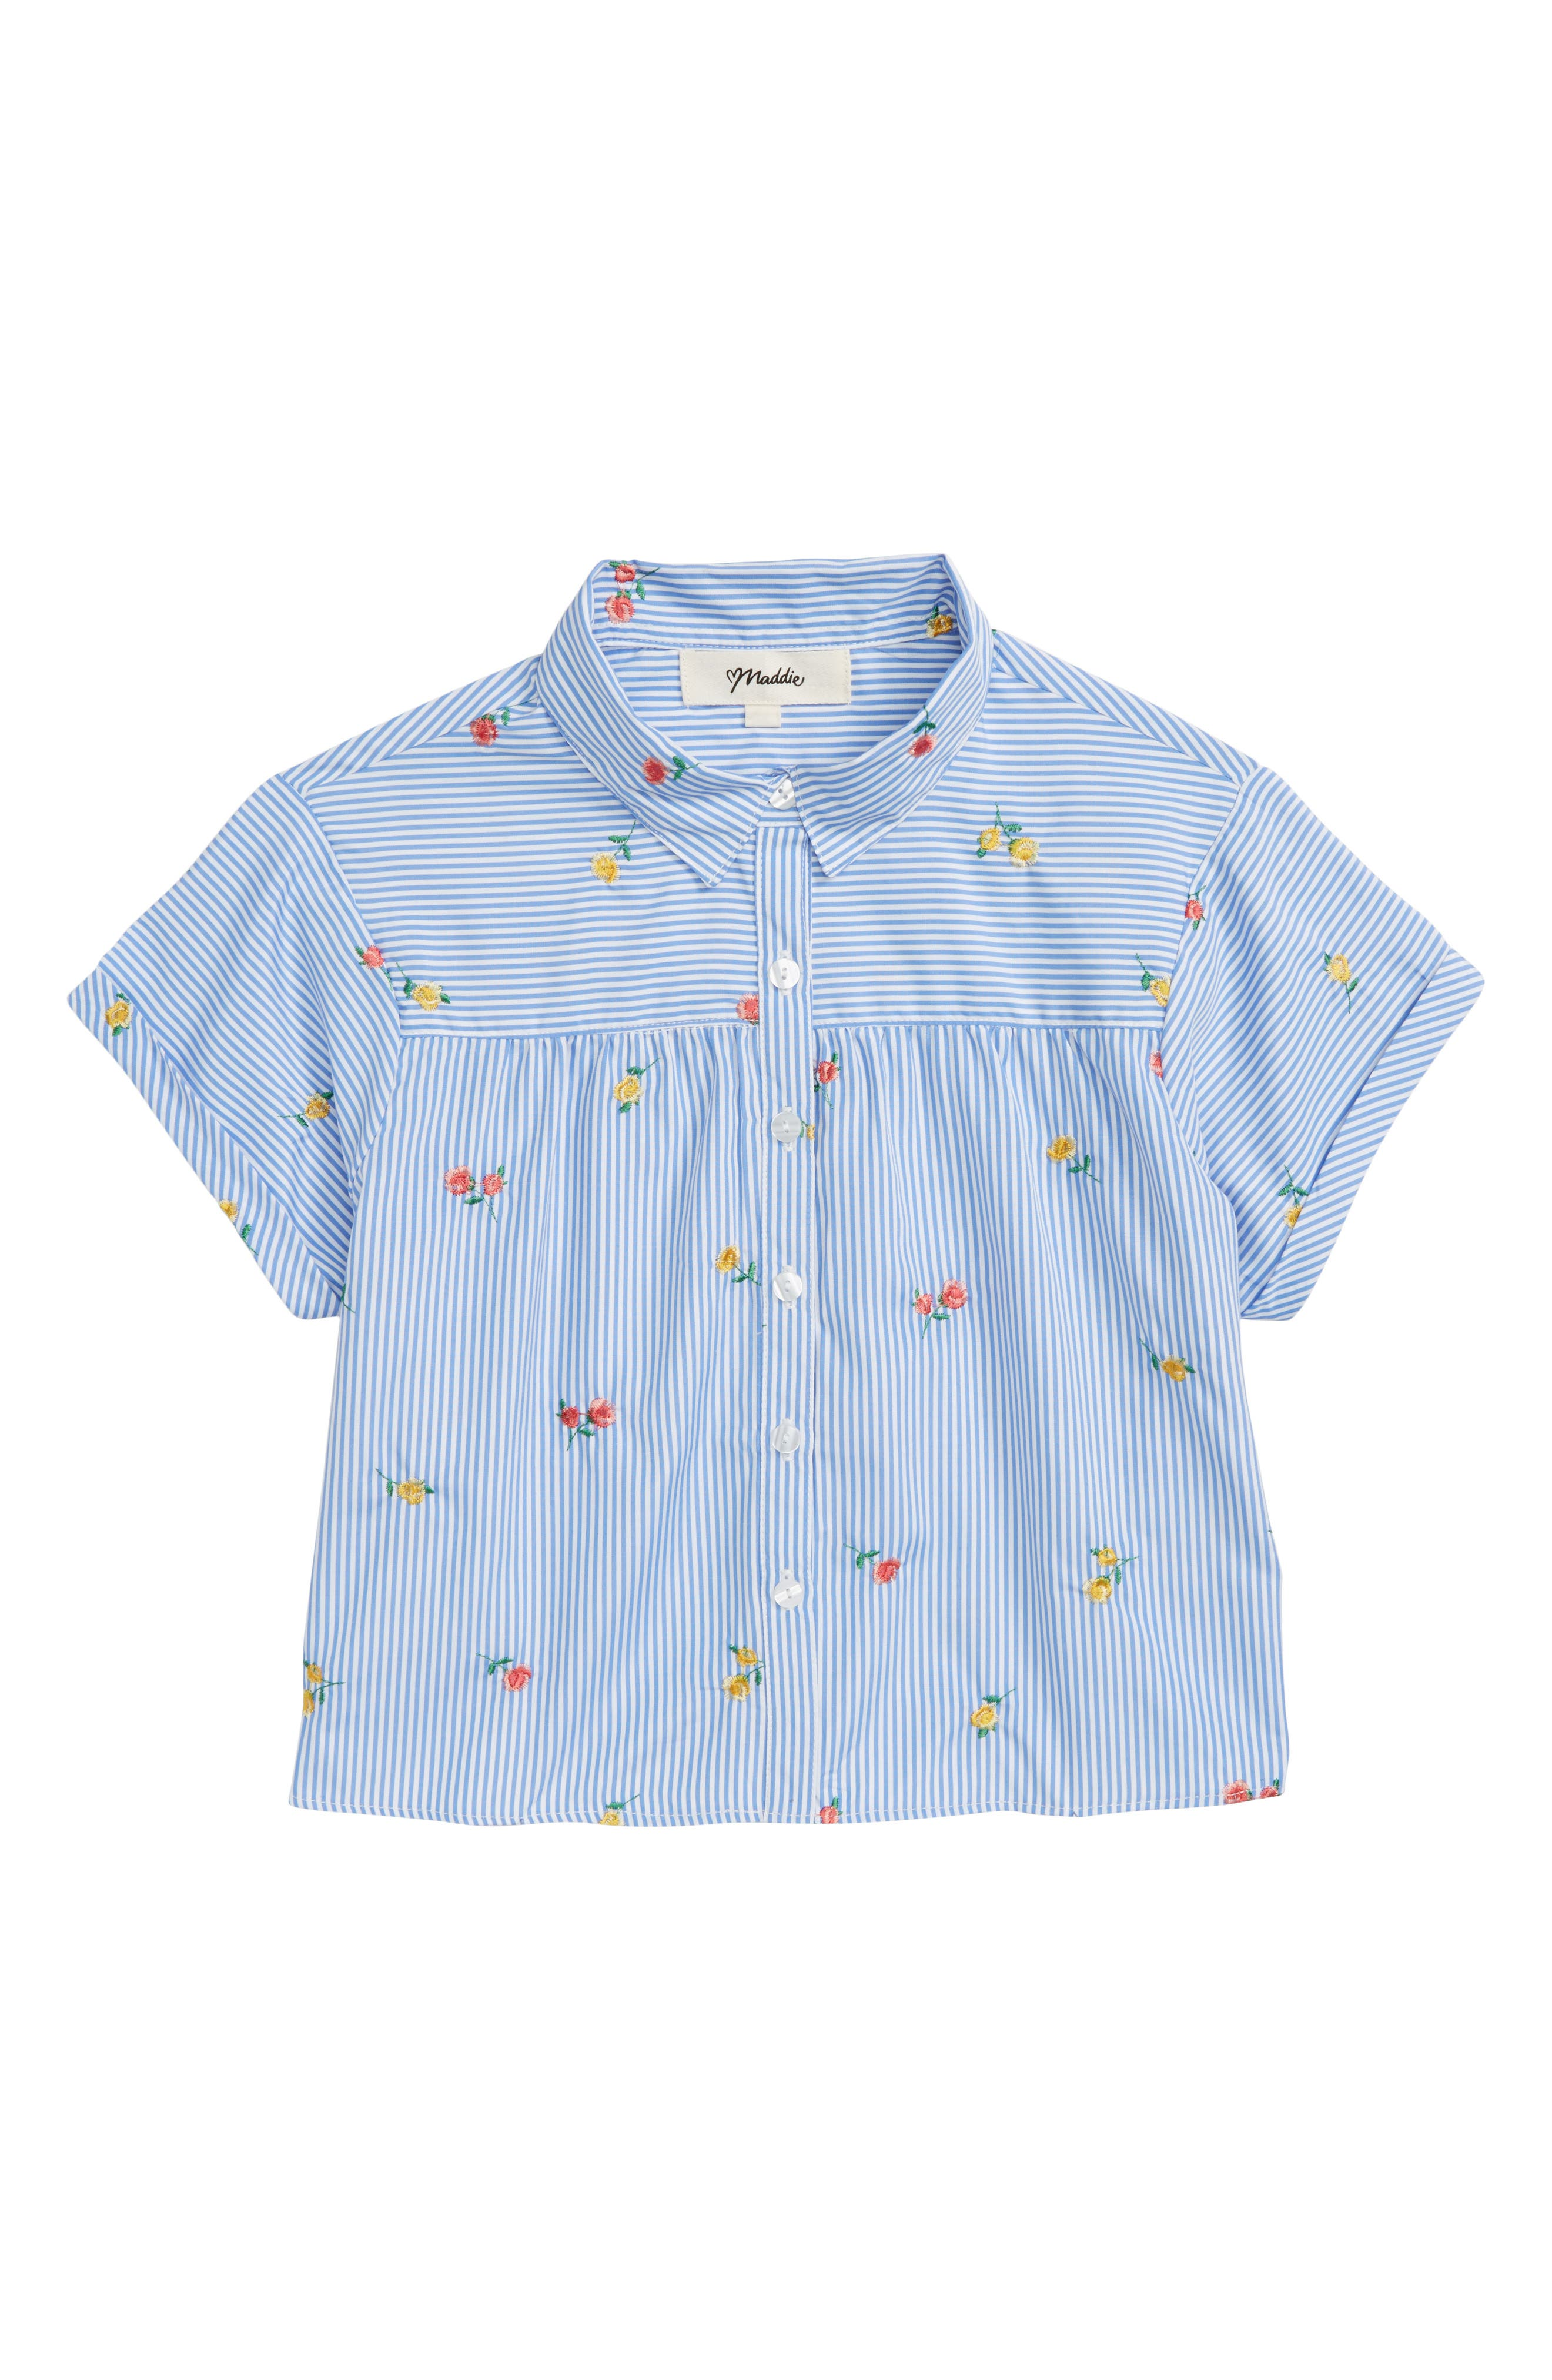 Floral Embroidery Stripe Shirt,                             Main thumbnail 1, color,